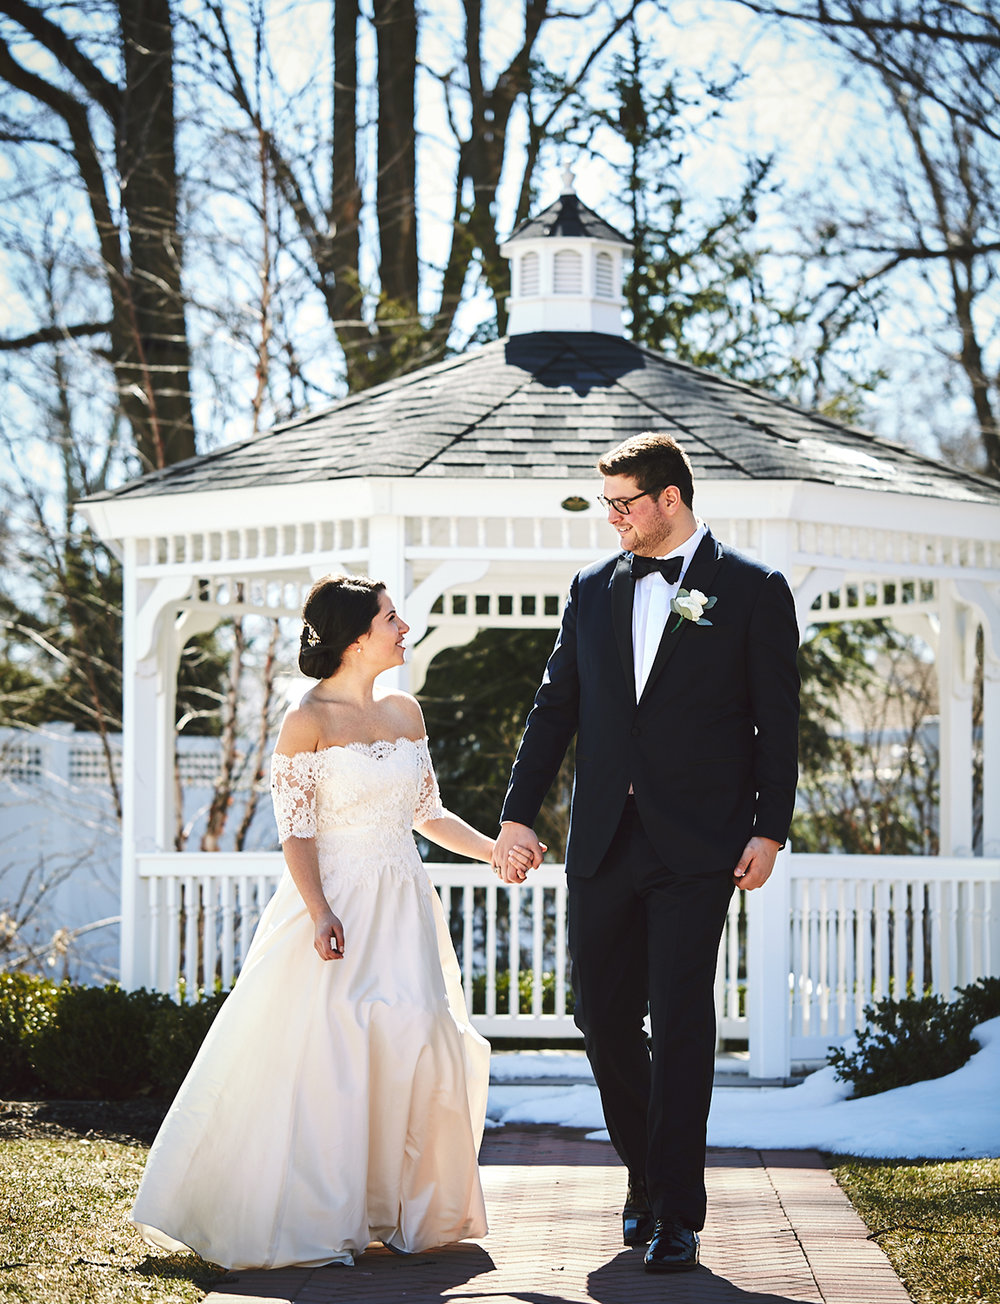 180324_StonehouseatStirlingRidgeWeddingPhotography_NJWeddingPhotographer_By_BriJohnsonWeddings_0049.jpg